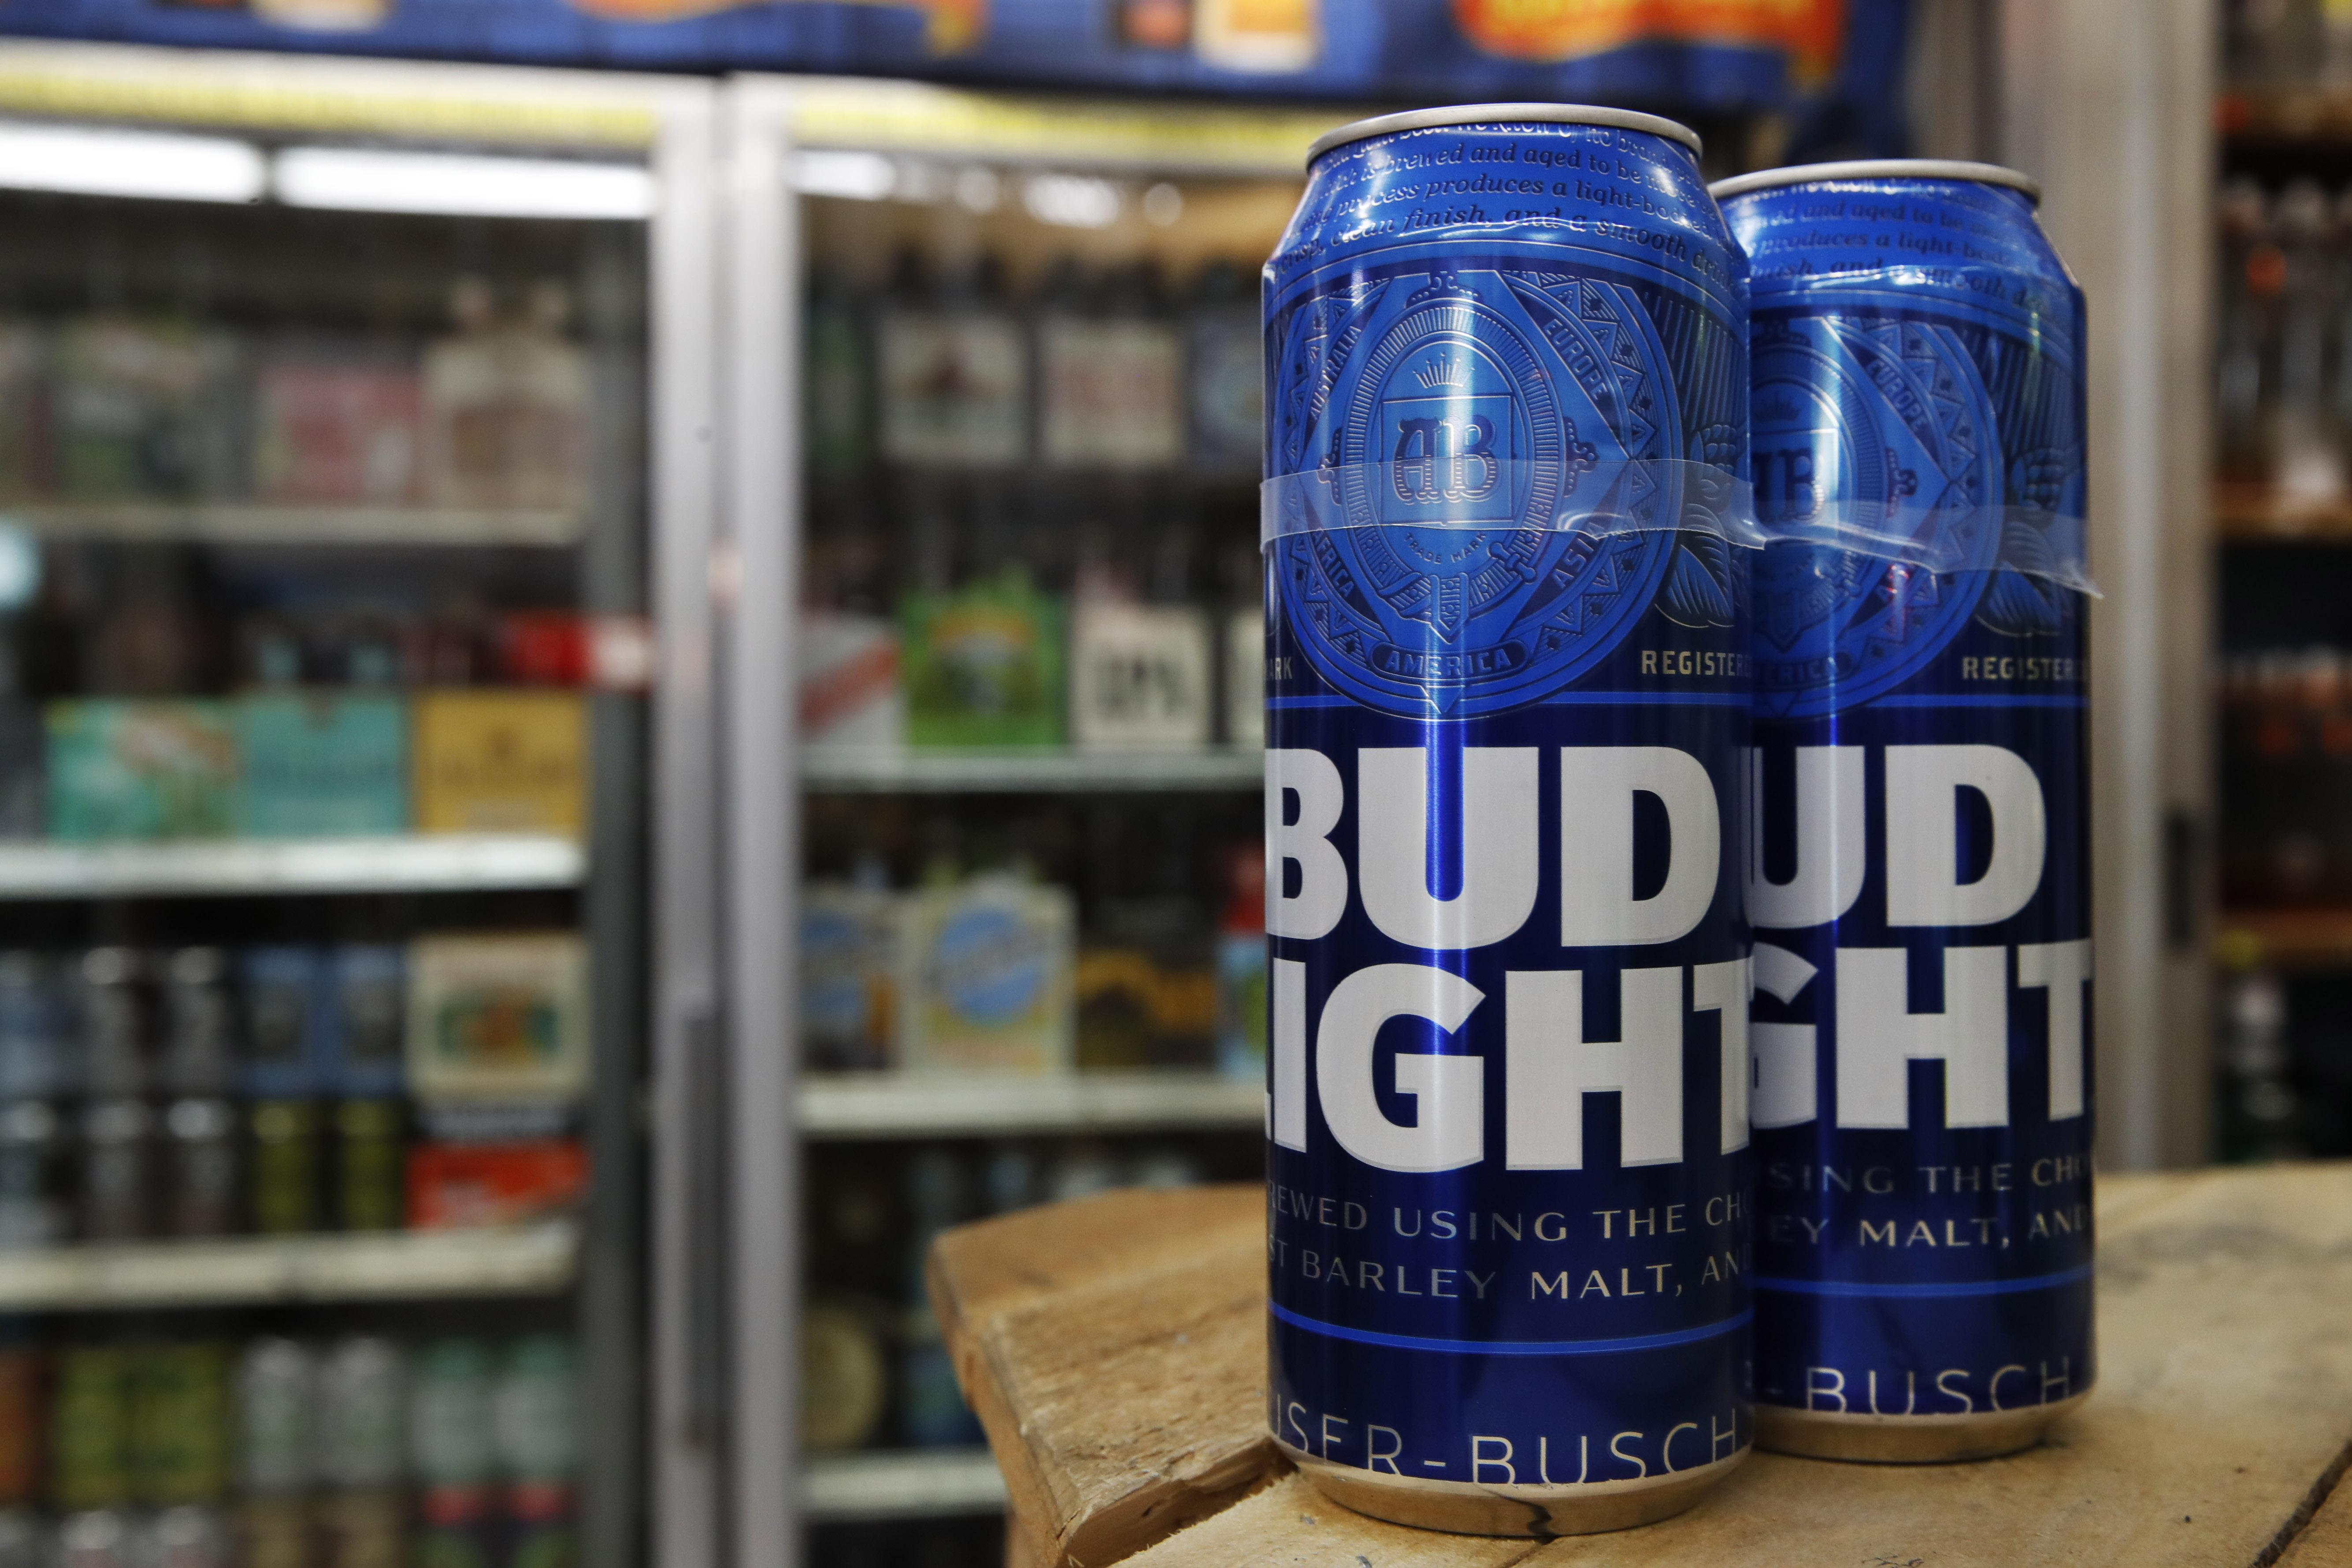 10, 2019, photo shows cans of Bud Light in